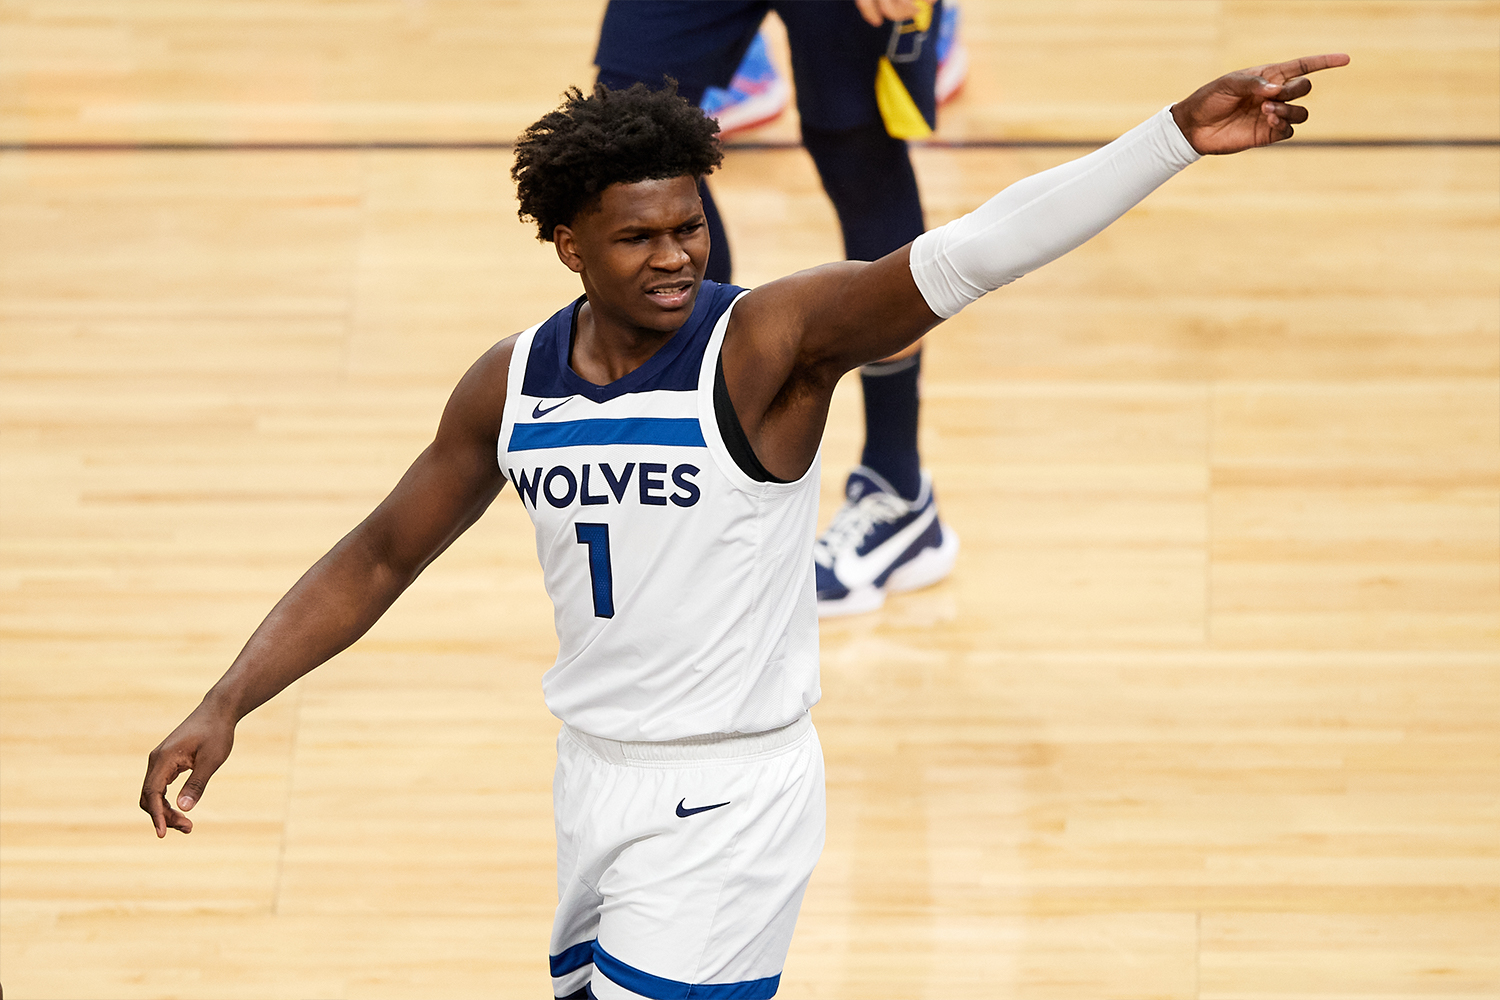 Anthony Edwards #1 of the Minnesota Timberwolves reacts to a call during the first quarter of the game against the Indiana Pacers